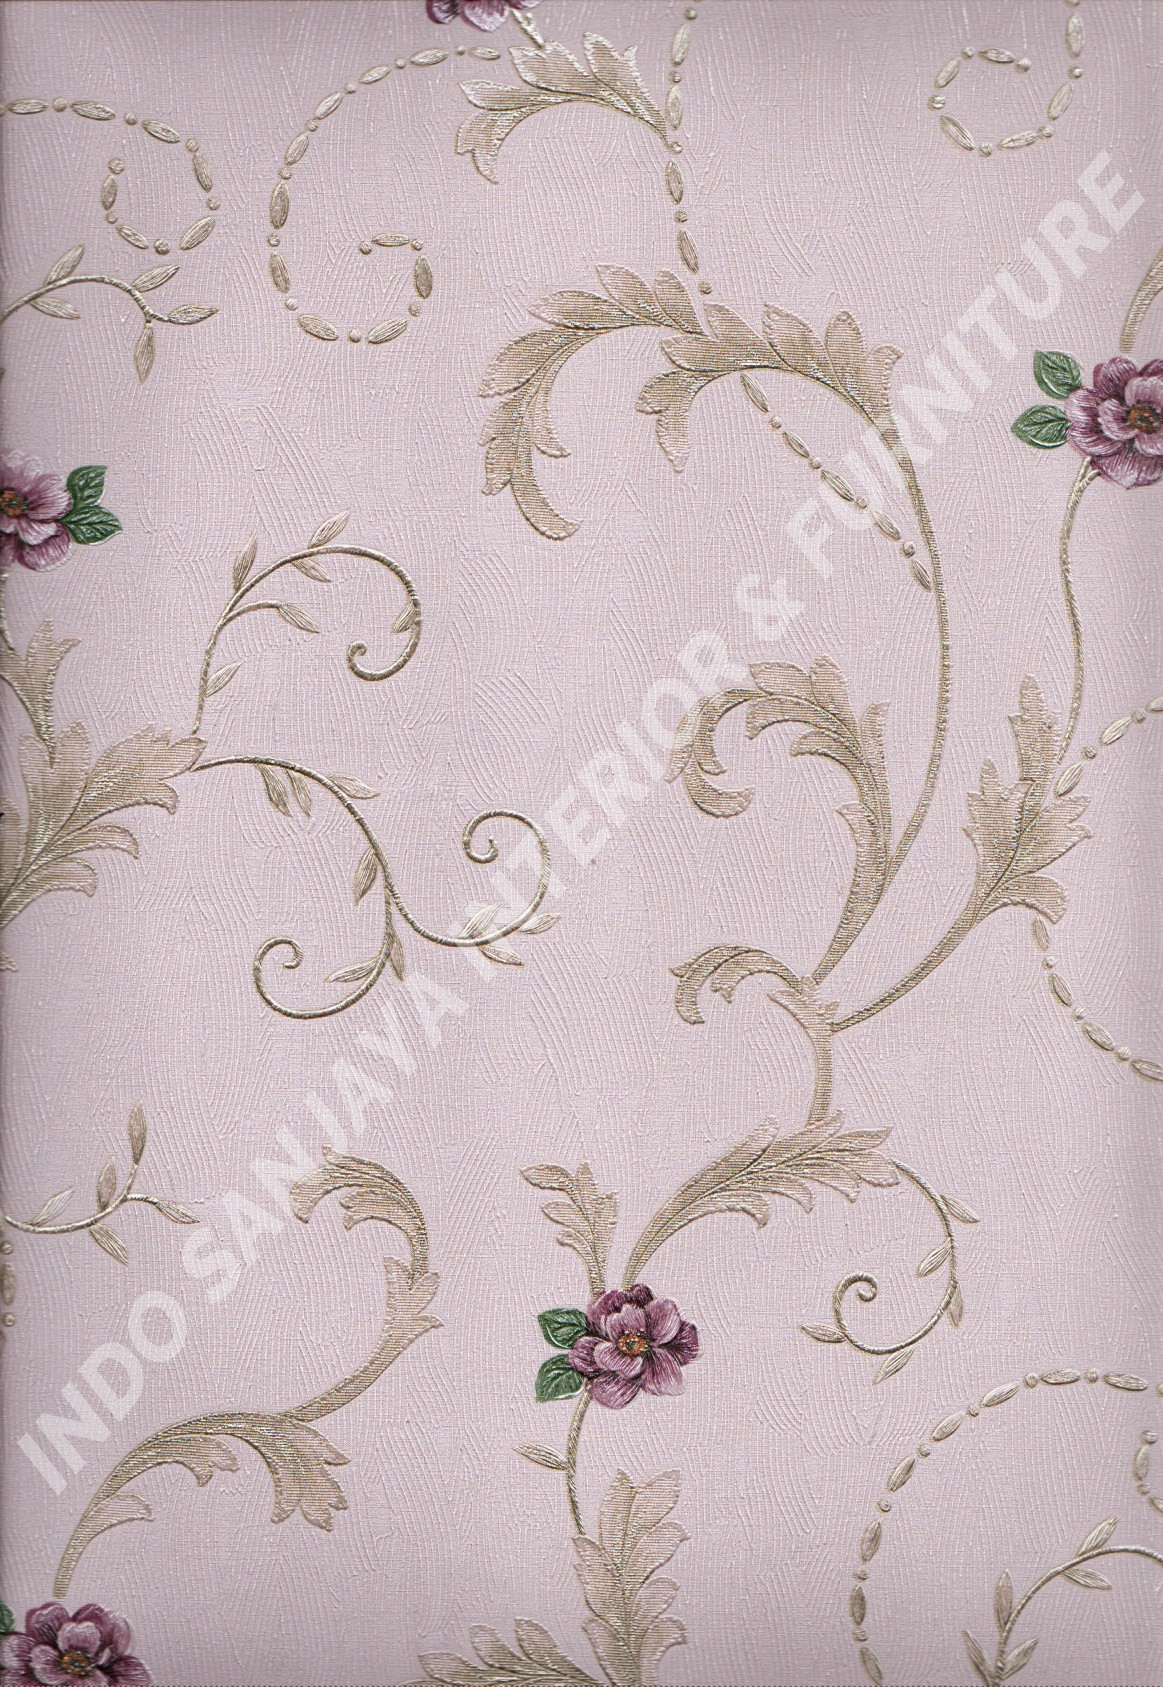 wallpaper   Wallpaper Bunga 8814:8814 corak  warna